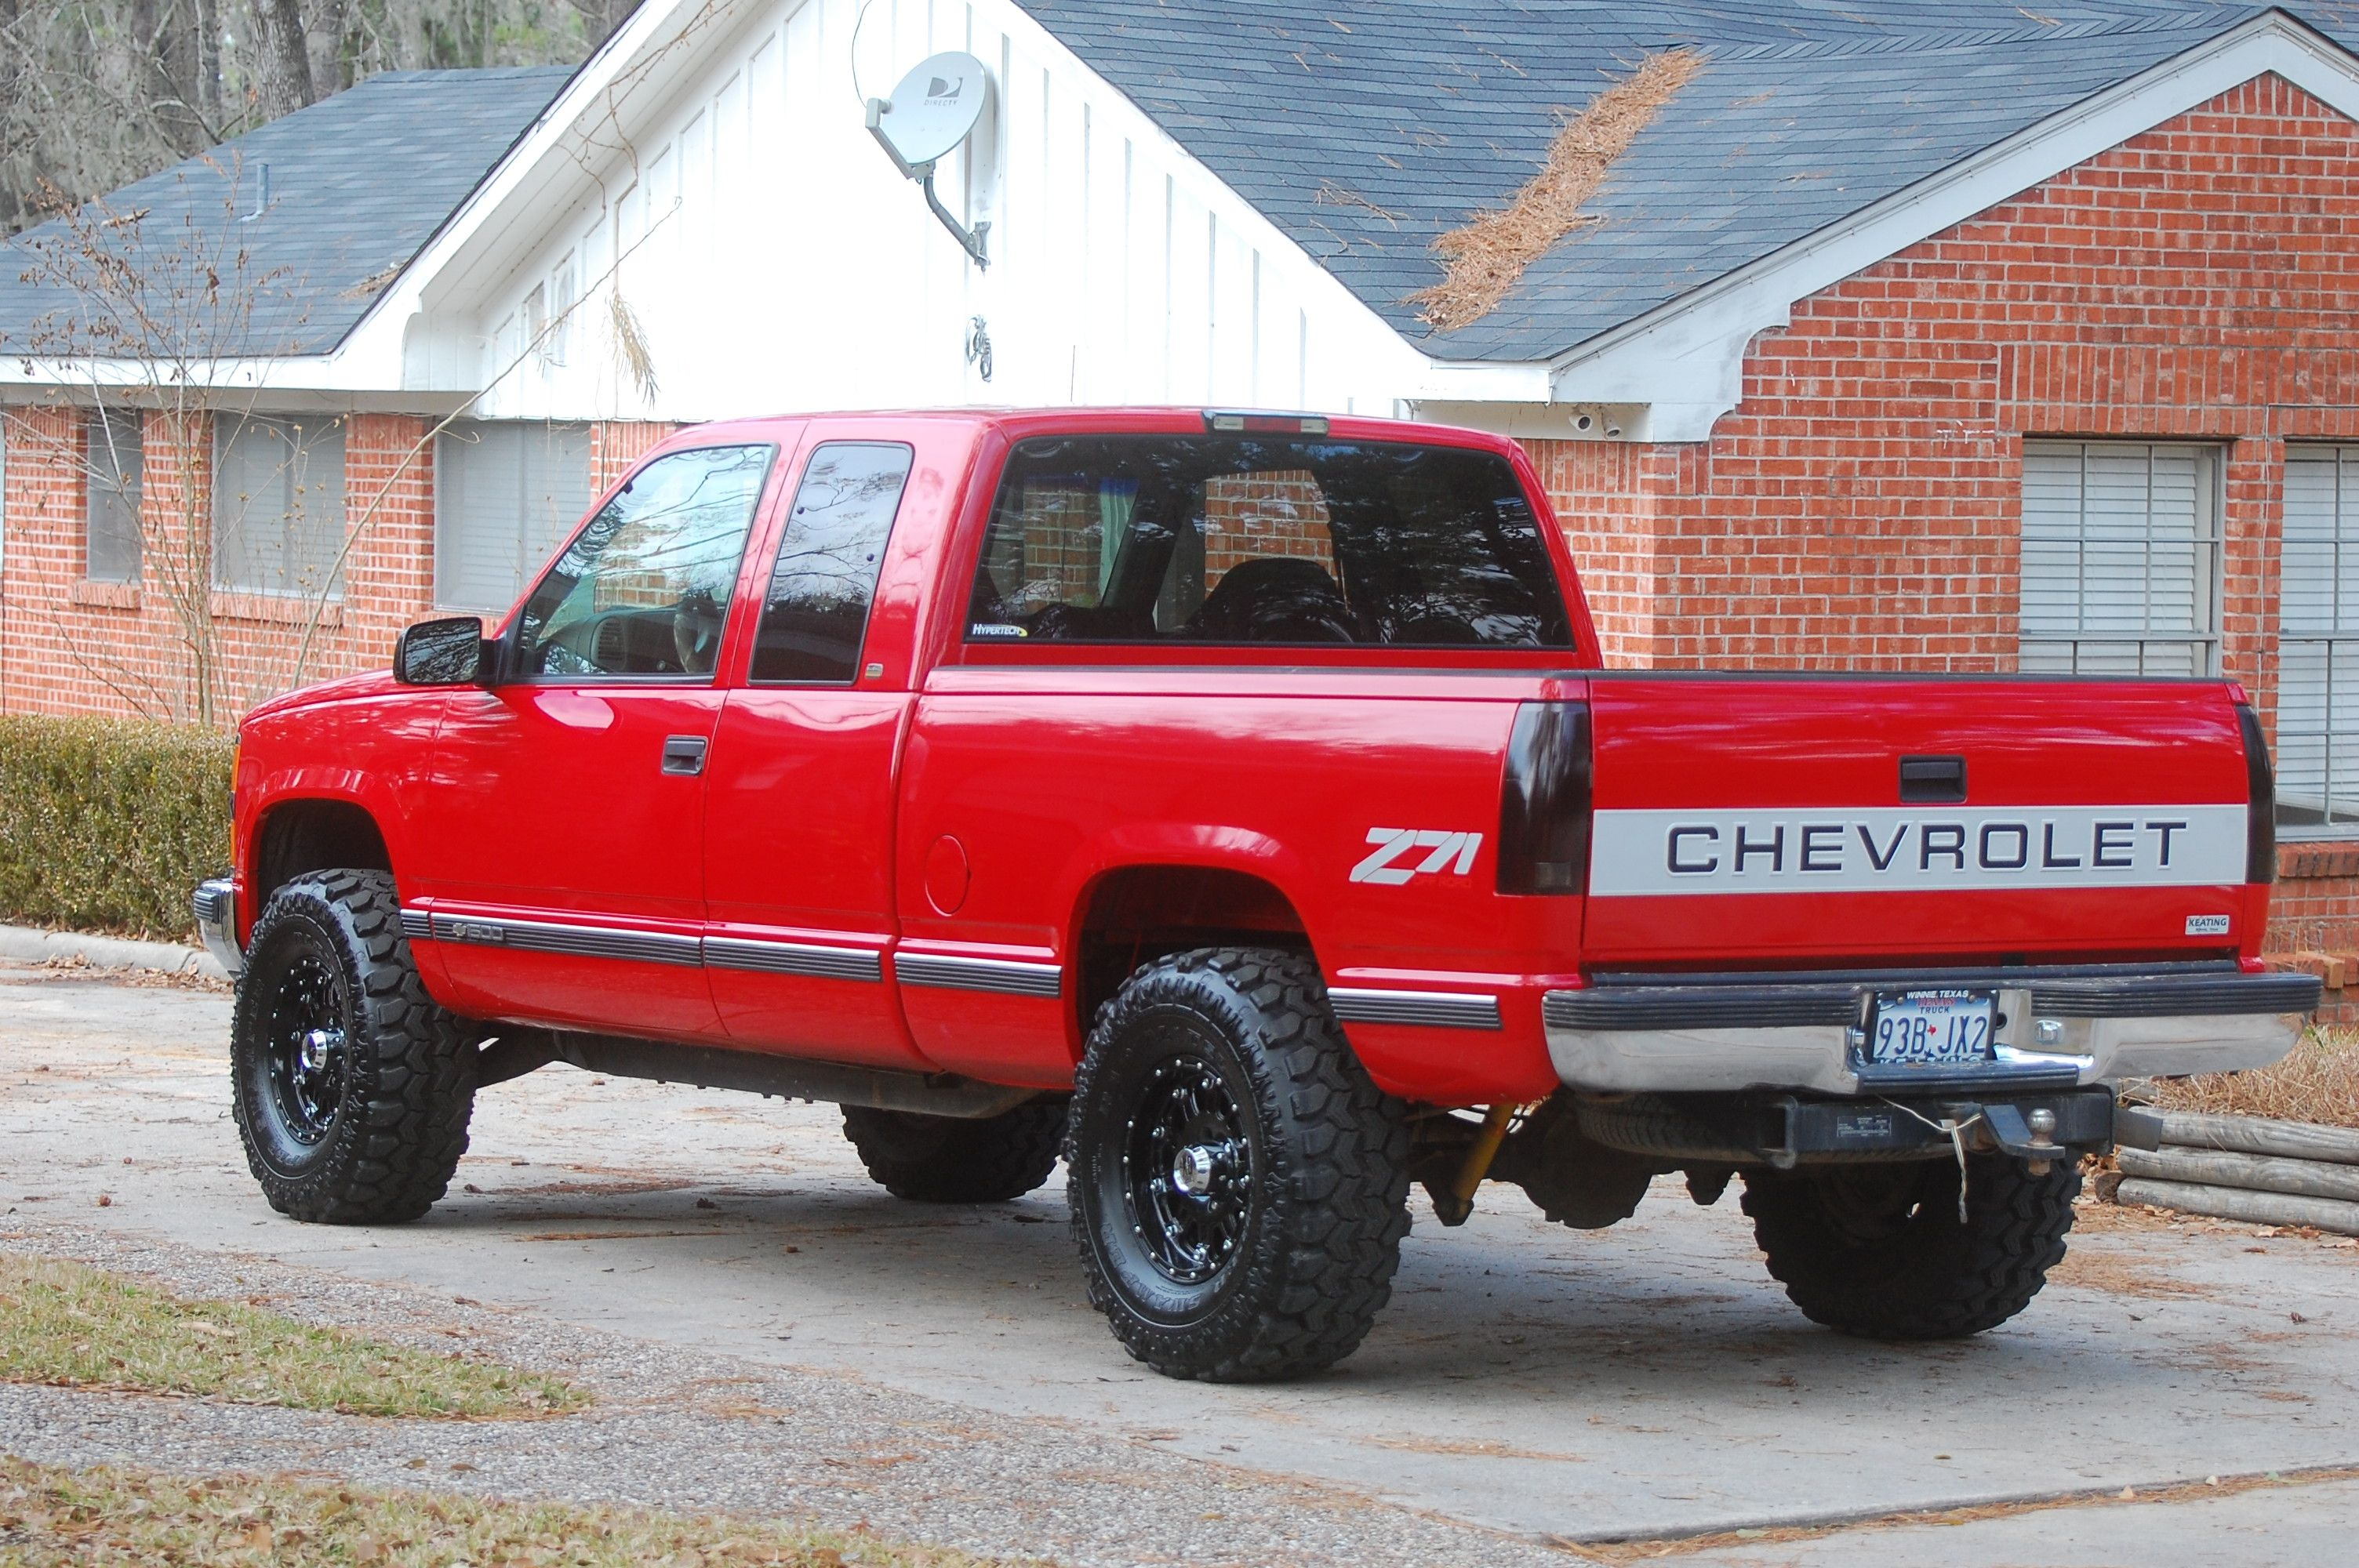 Taylorryan123 1997 Chevrolet Silverado 1500 Regular Cab Specs Photos Modification Info At Cardomain Chevrolet Trucks Chevrolet Silverado Chevrolet